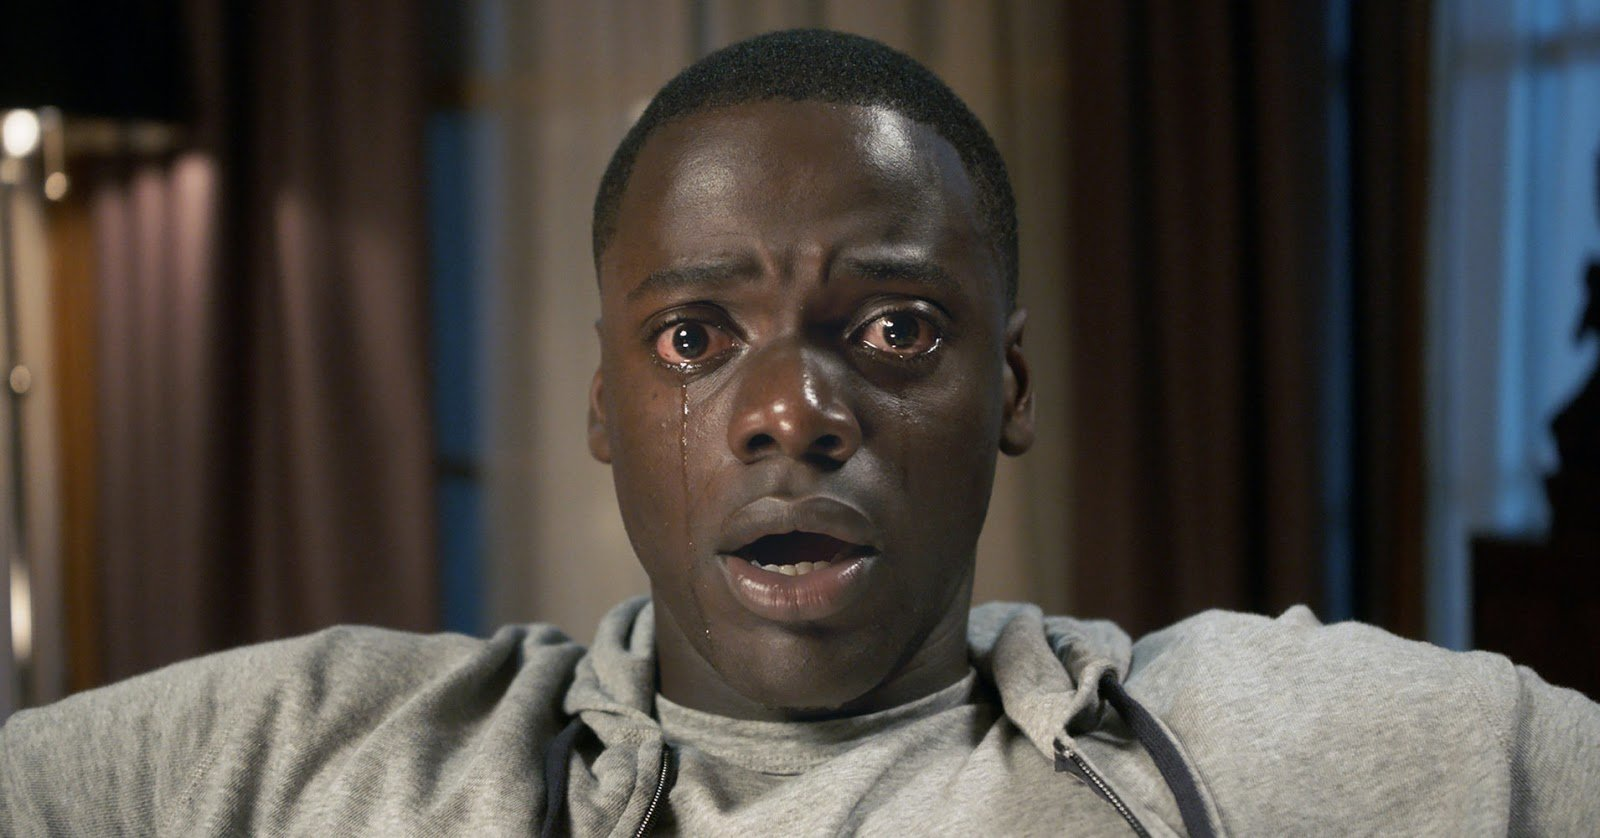 This Alternate Ending for 'Get Out' is Exactly What Black People Expected